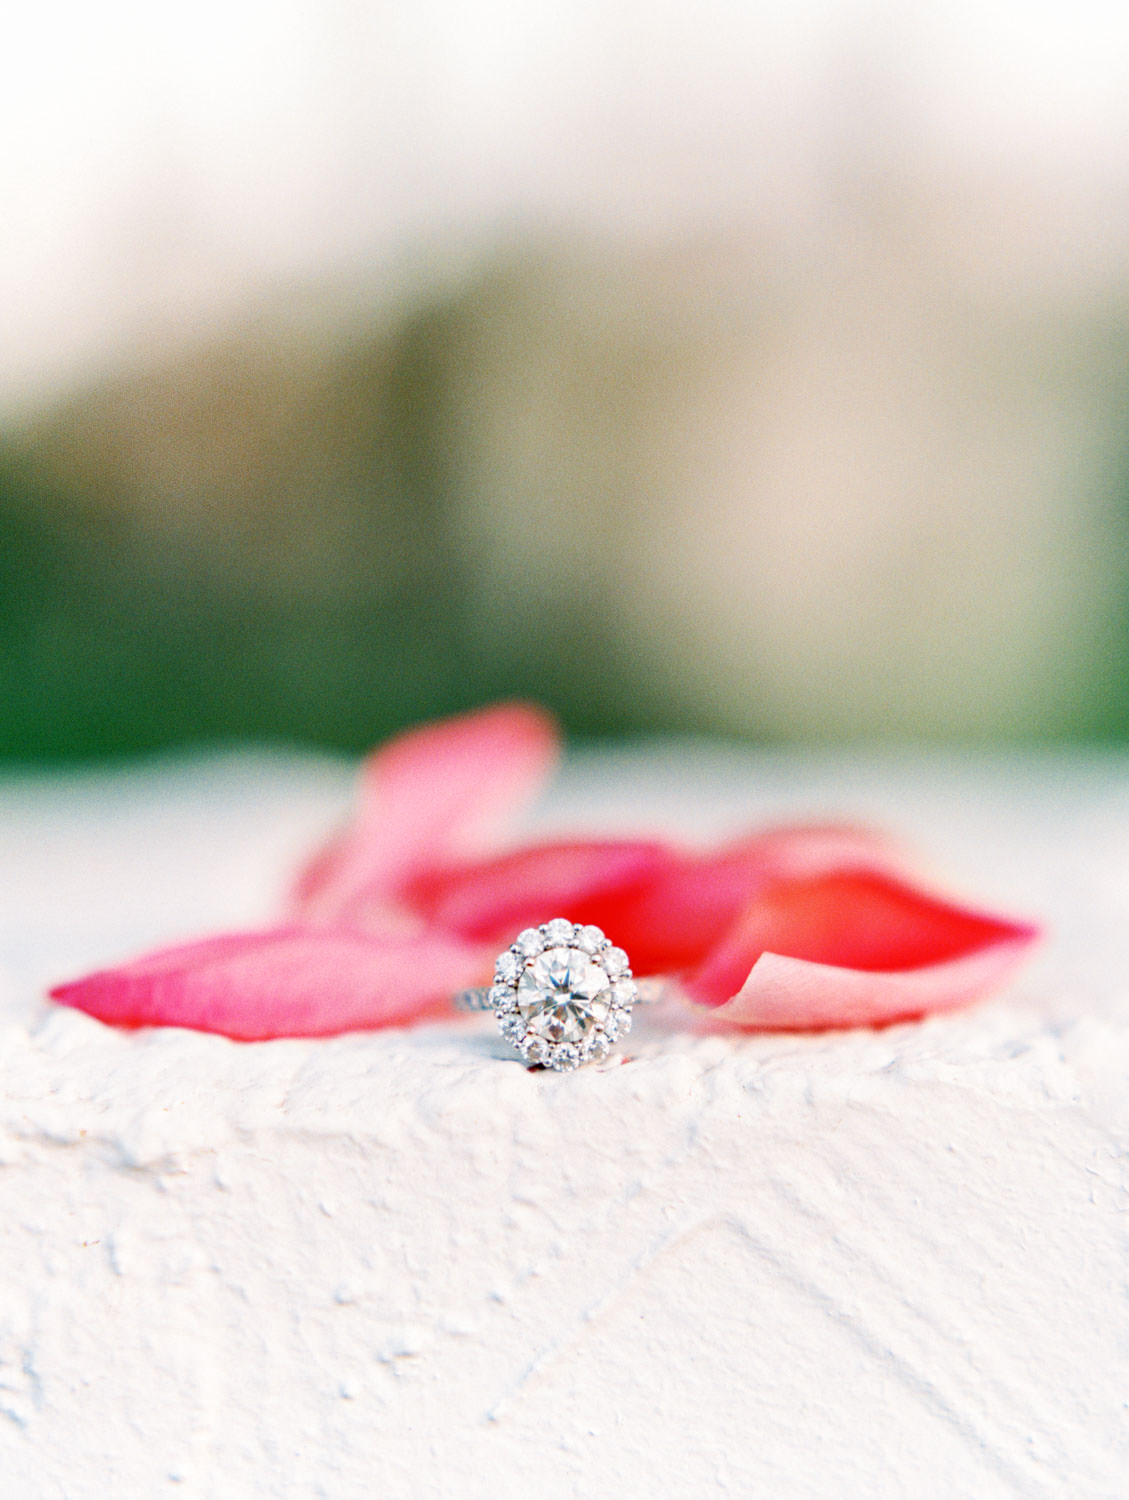 Large round diamond engagement ring surrounded by a large halo styled with pink petals. La Quinta Resort Engagement Photos on Film by Cavin Elizabeth Photography